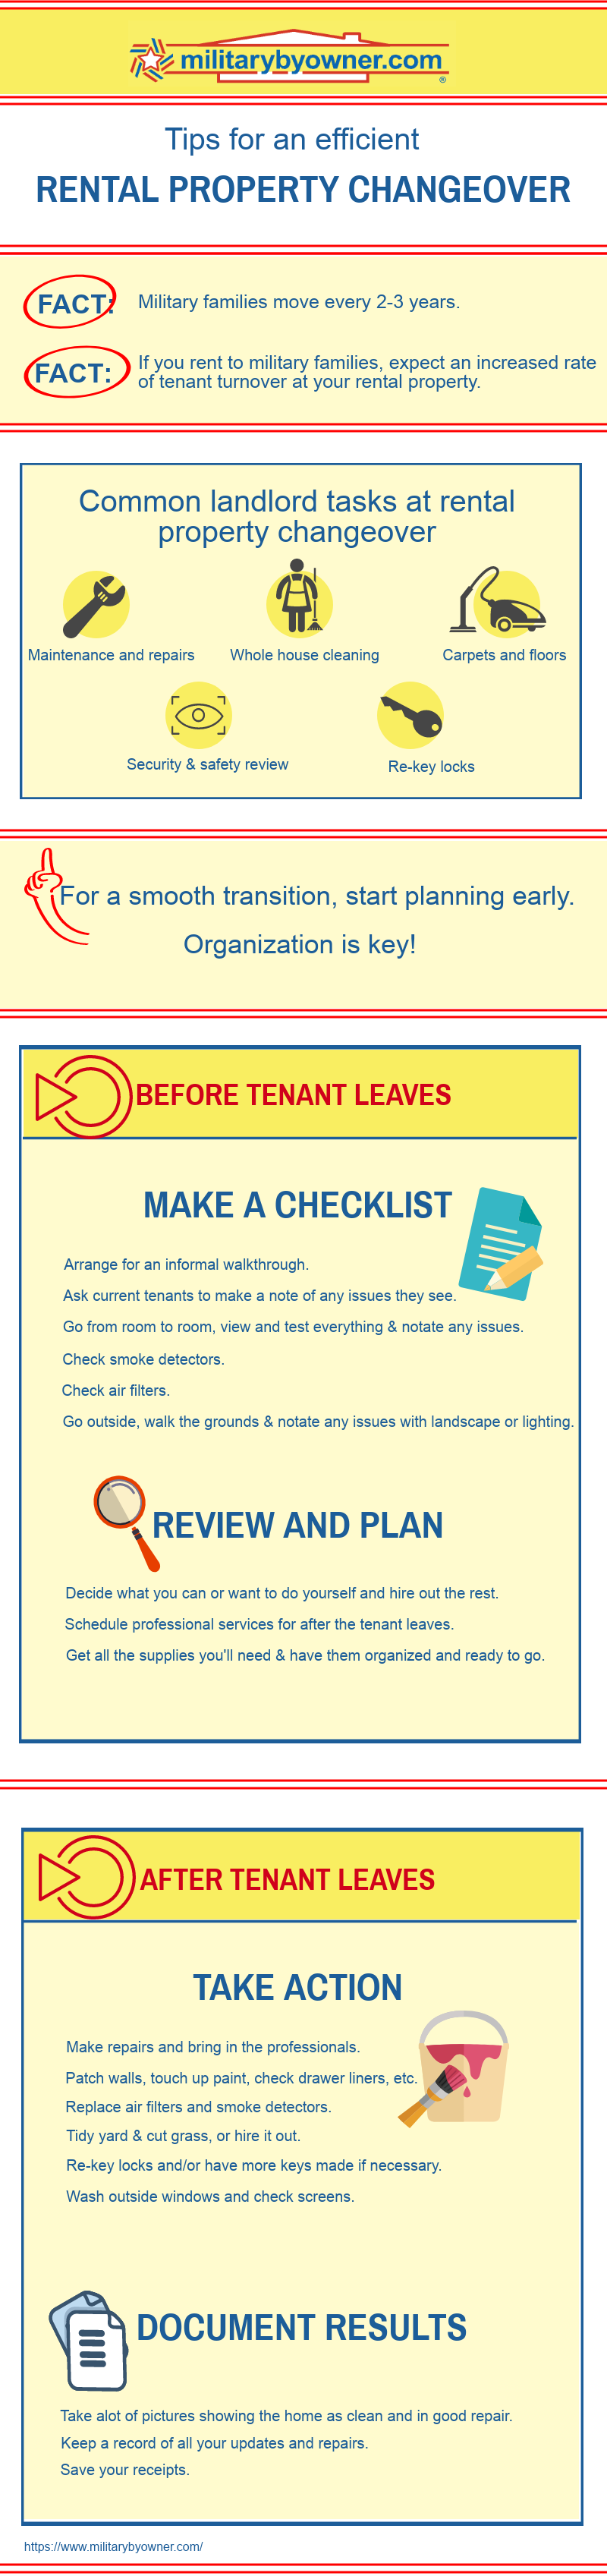 2018 PROPERTY MANAGEMENT - RENTAL PROPERTY CHANGEOVER